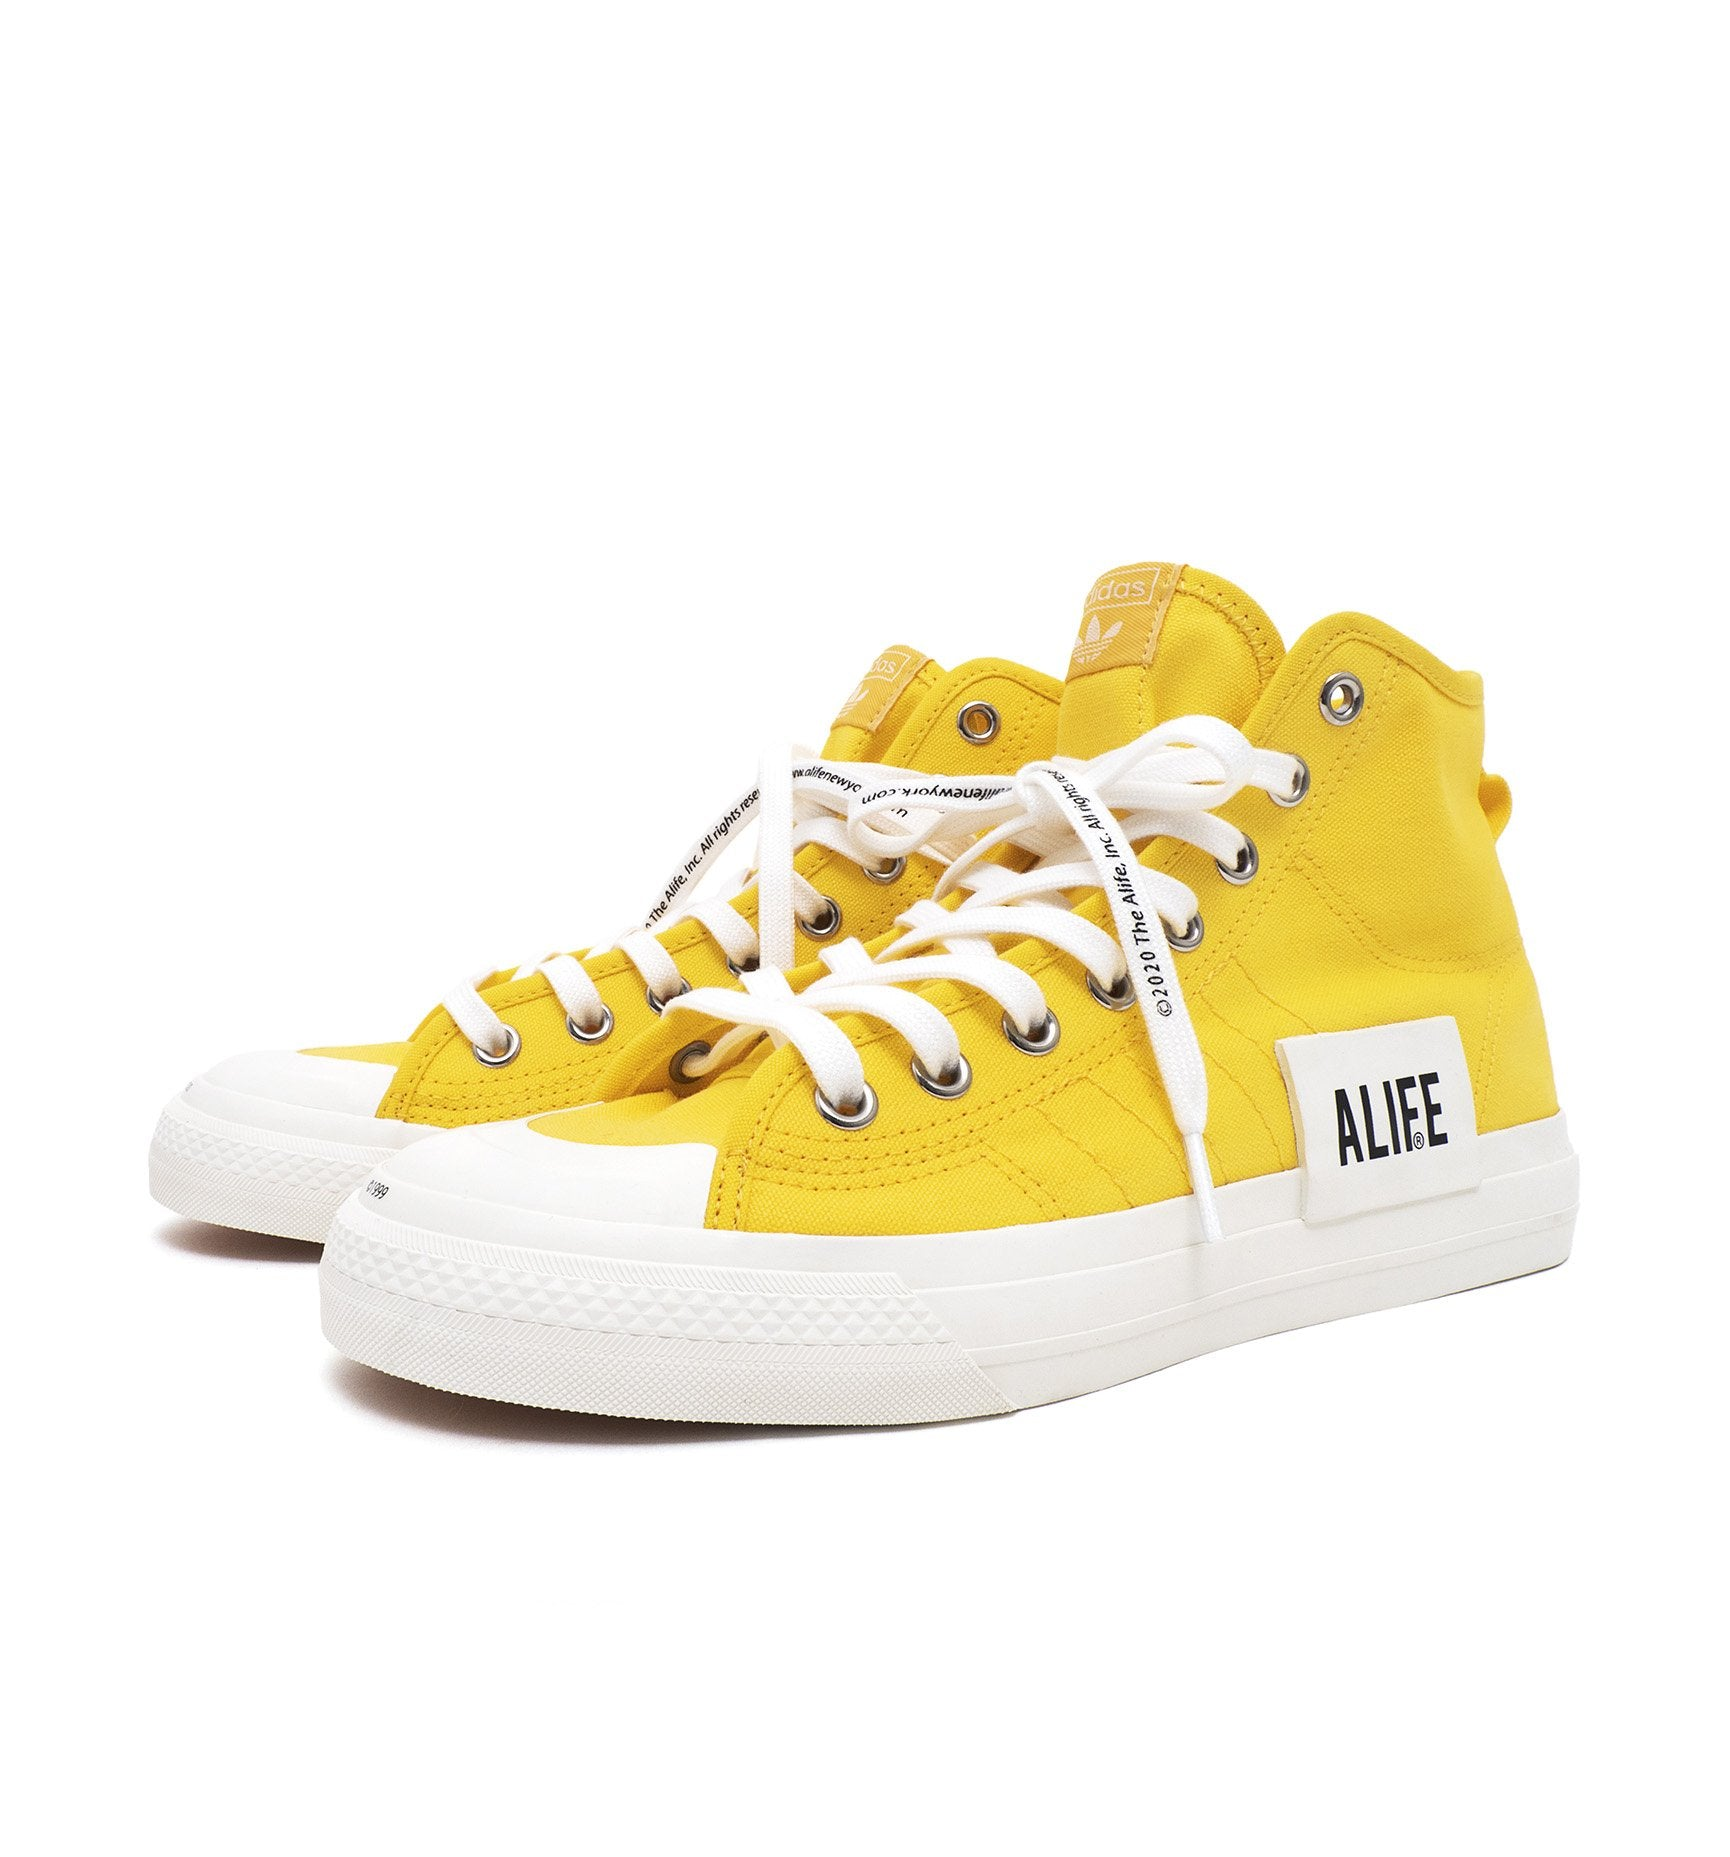 Alife adidas Nizza Yellow - 2_FX2619